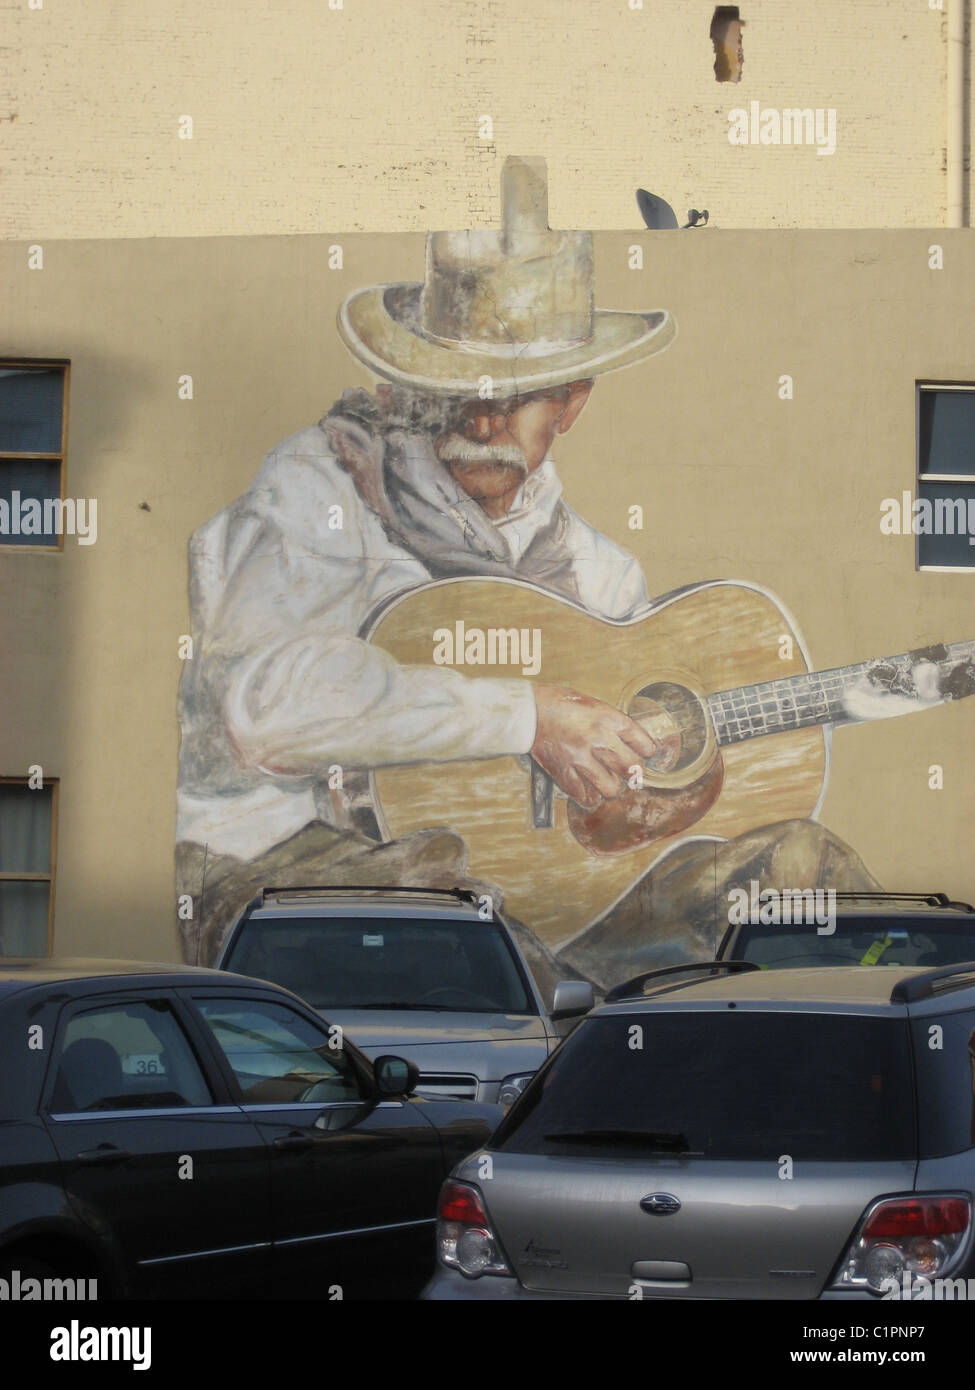 Large mural on wall of old cowboy playing a guitar, Denver, Colorado, USA. - Stock Image